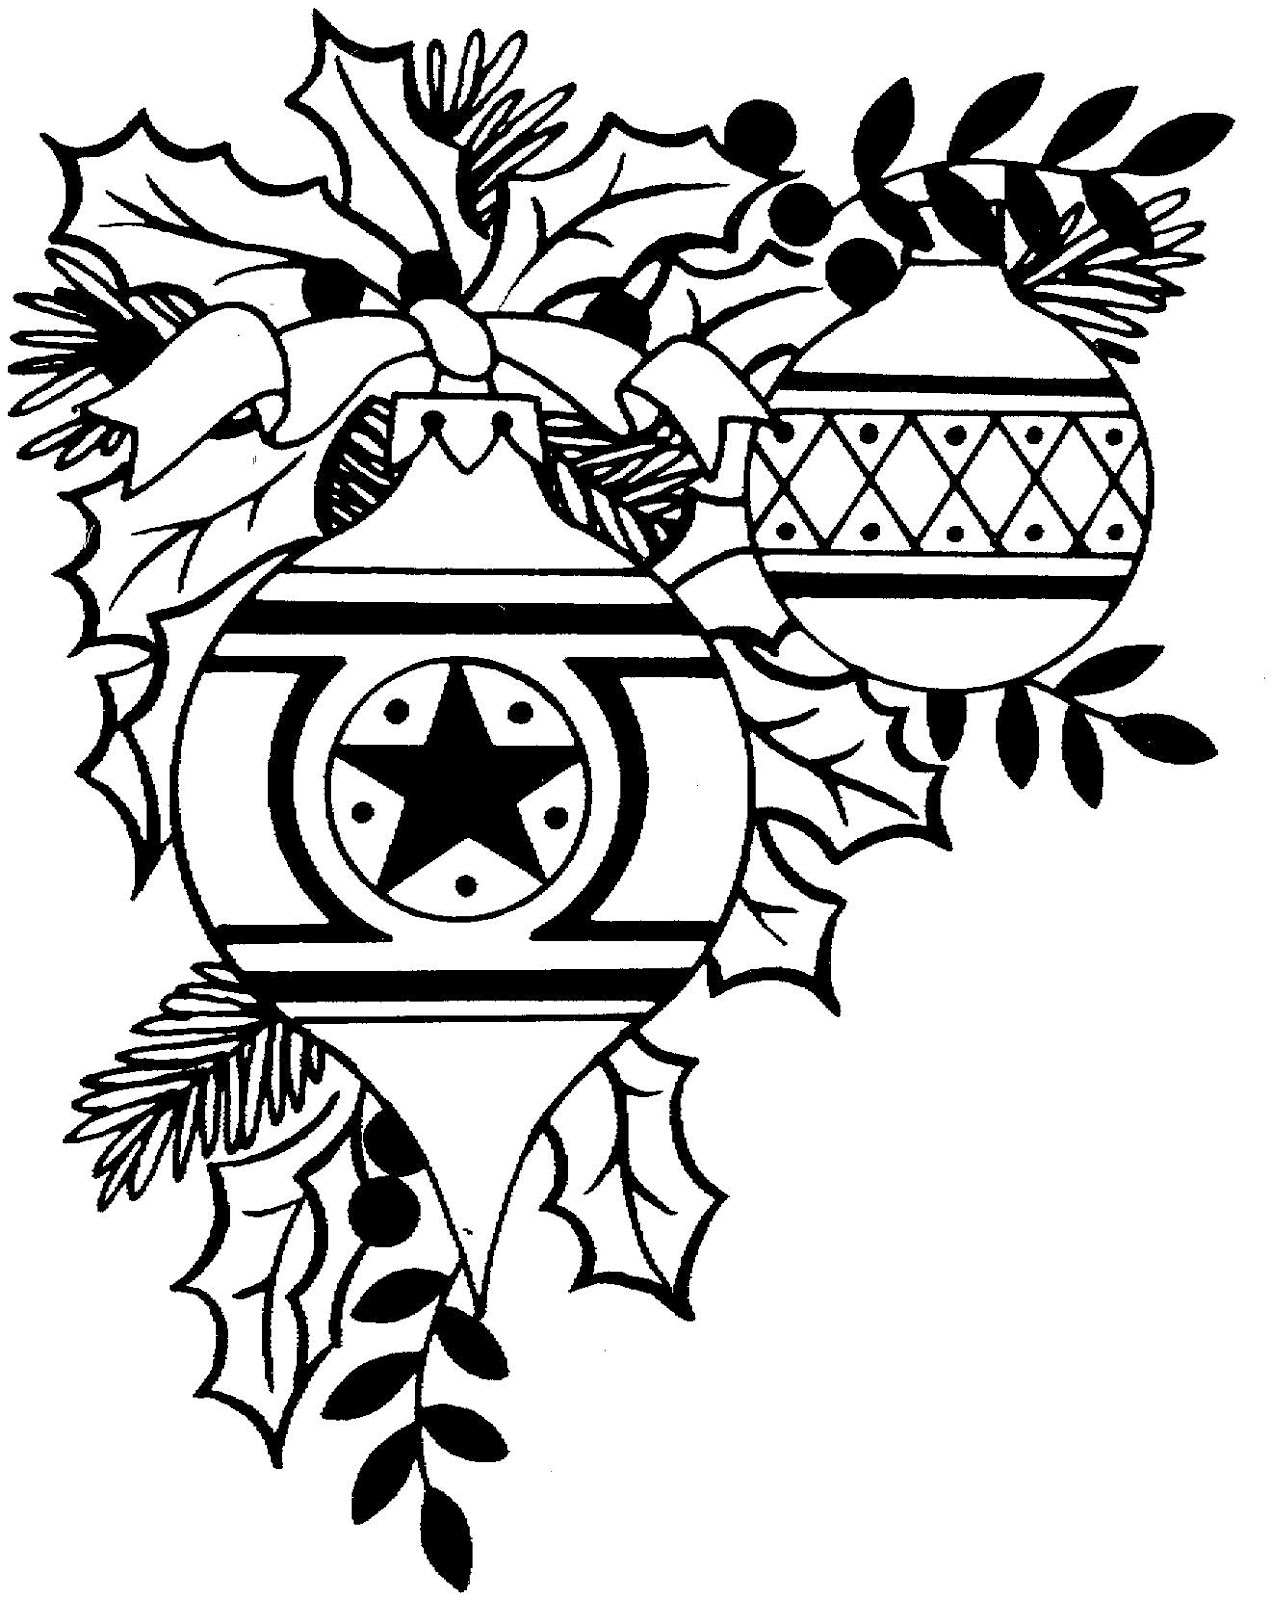 Christmas Ornament Clip Art Black And White Christmas Ornament Black And White Christmas Ornaments